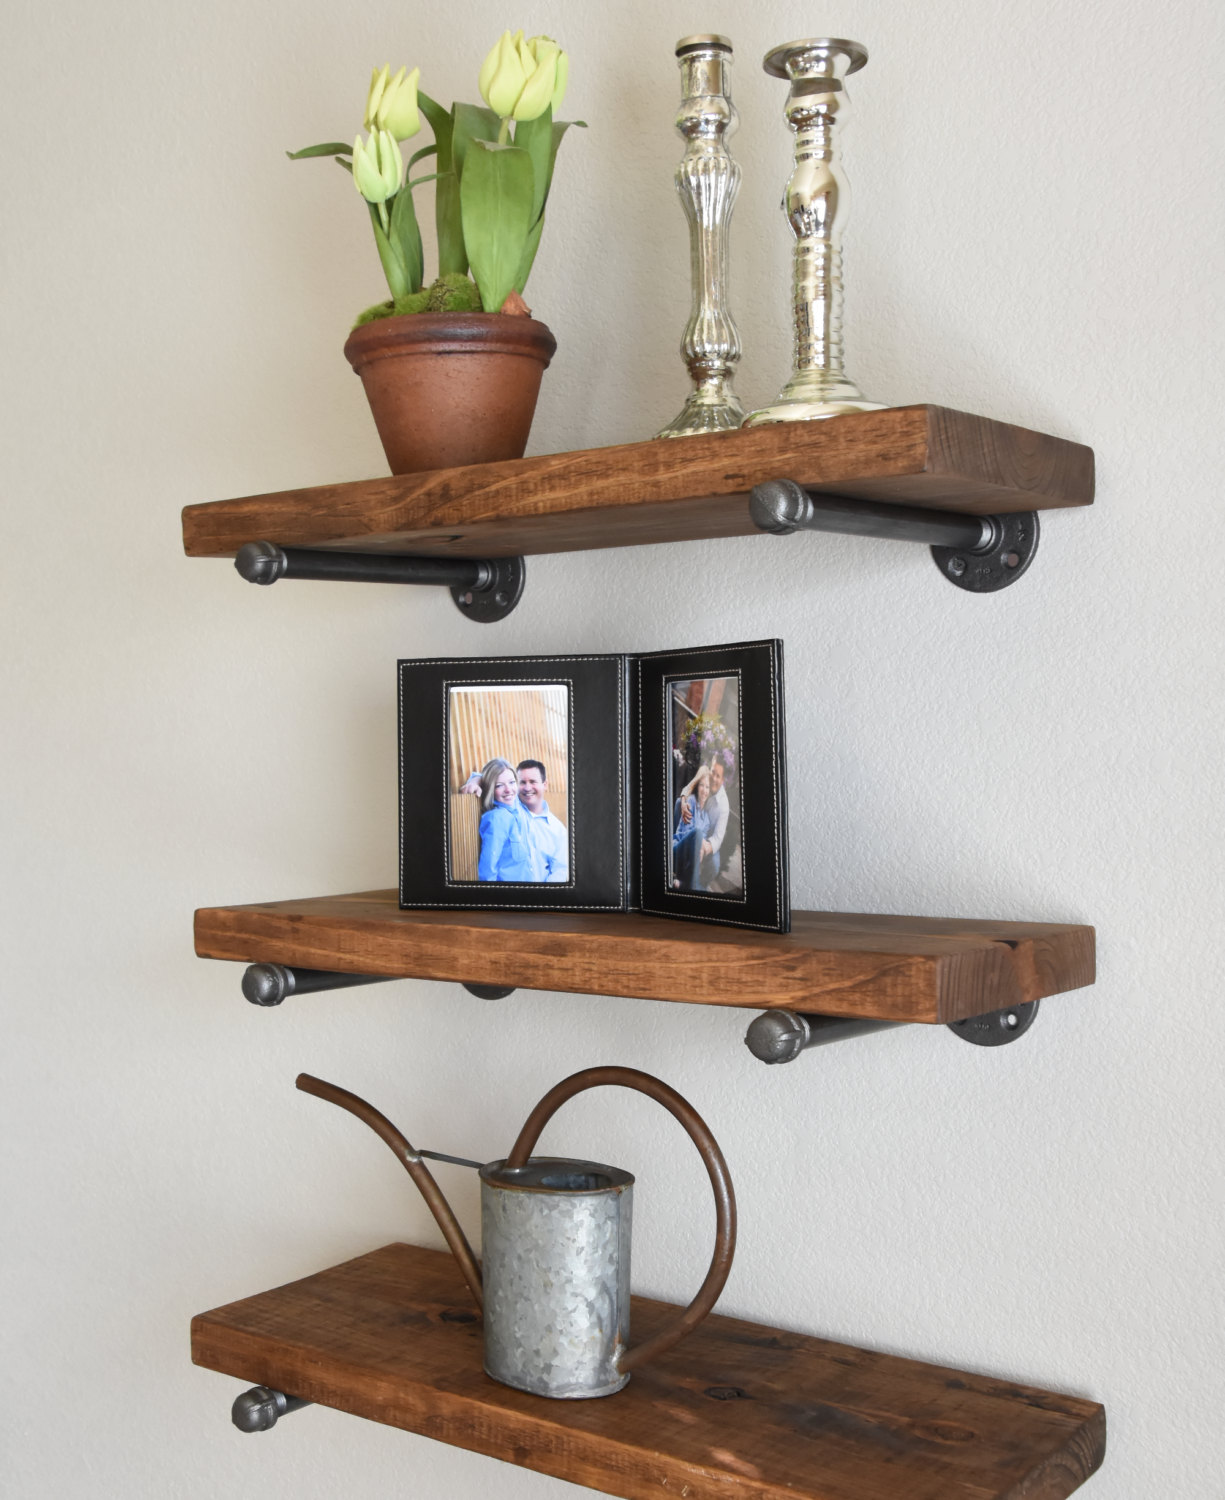 deep floating shelves wood industrial pipe shelf rustic wall brackets open shelving farmhouse kitchen bathroom decor fullxfull with pipes steel cape town closet systems best